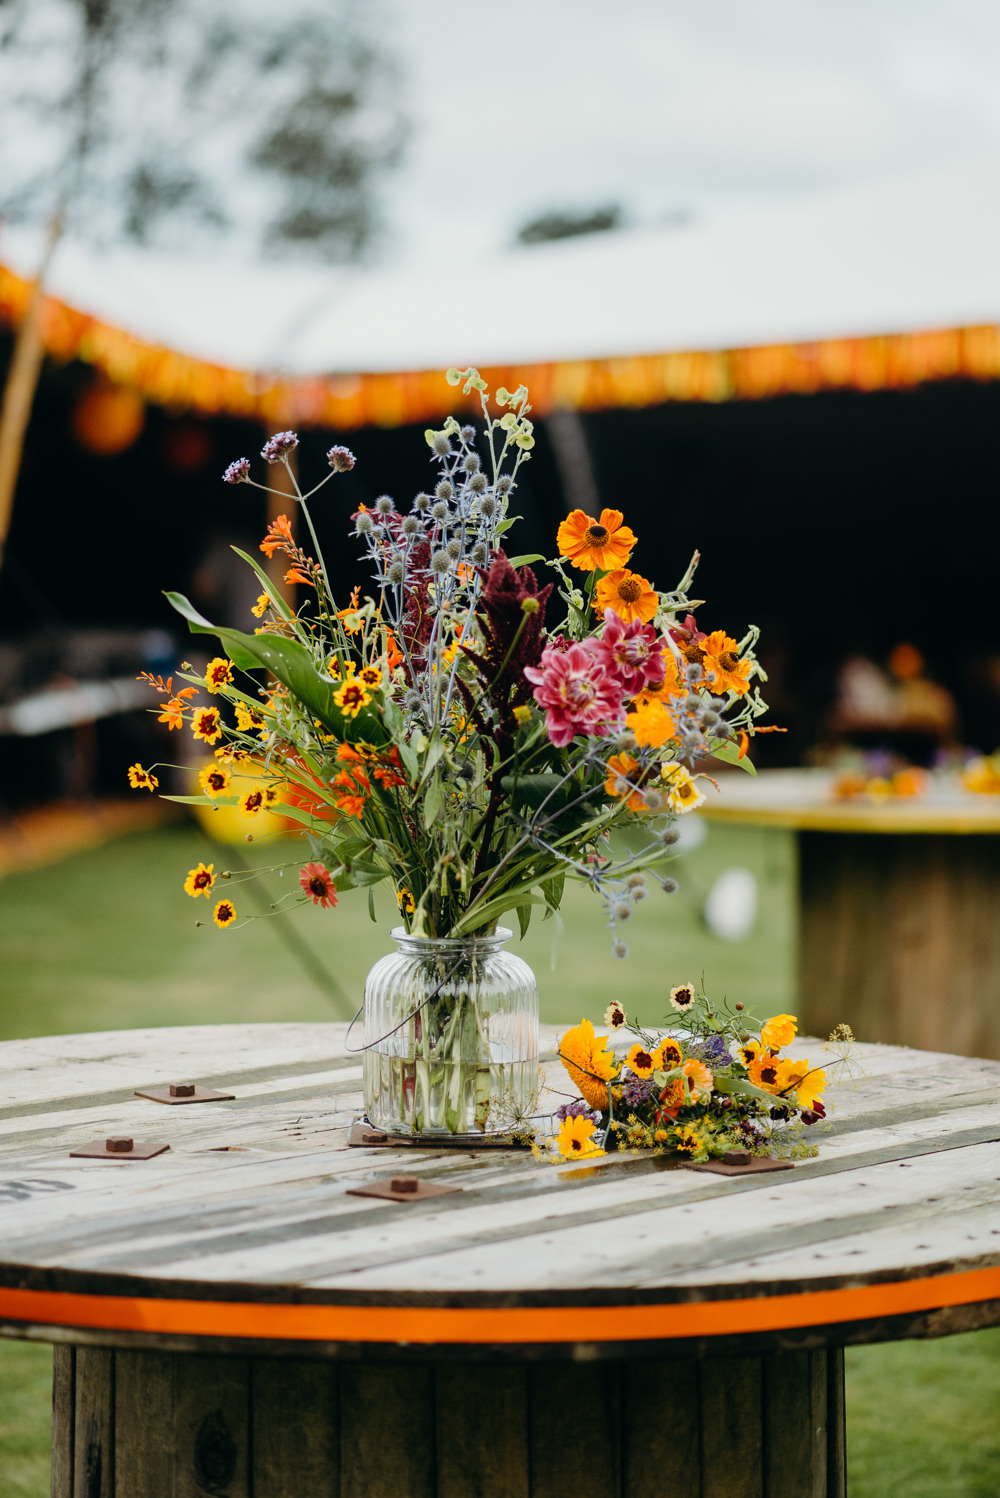 Wild Meadow Flowers Wildflowers Yellow Colourful Stretch Tent Wedding Peter Mackey Photography